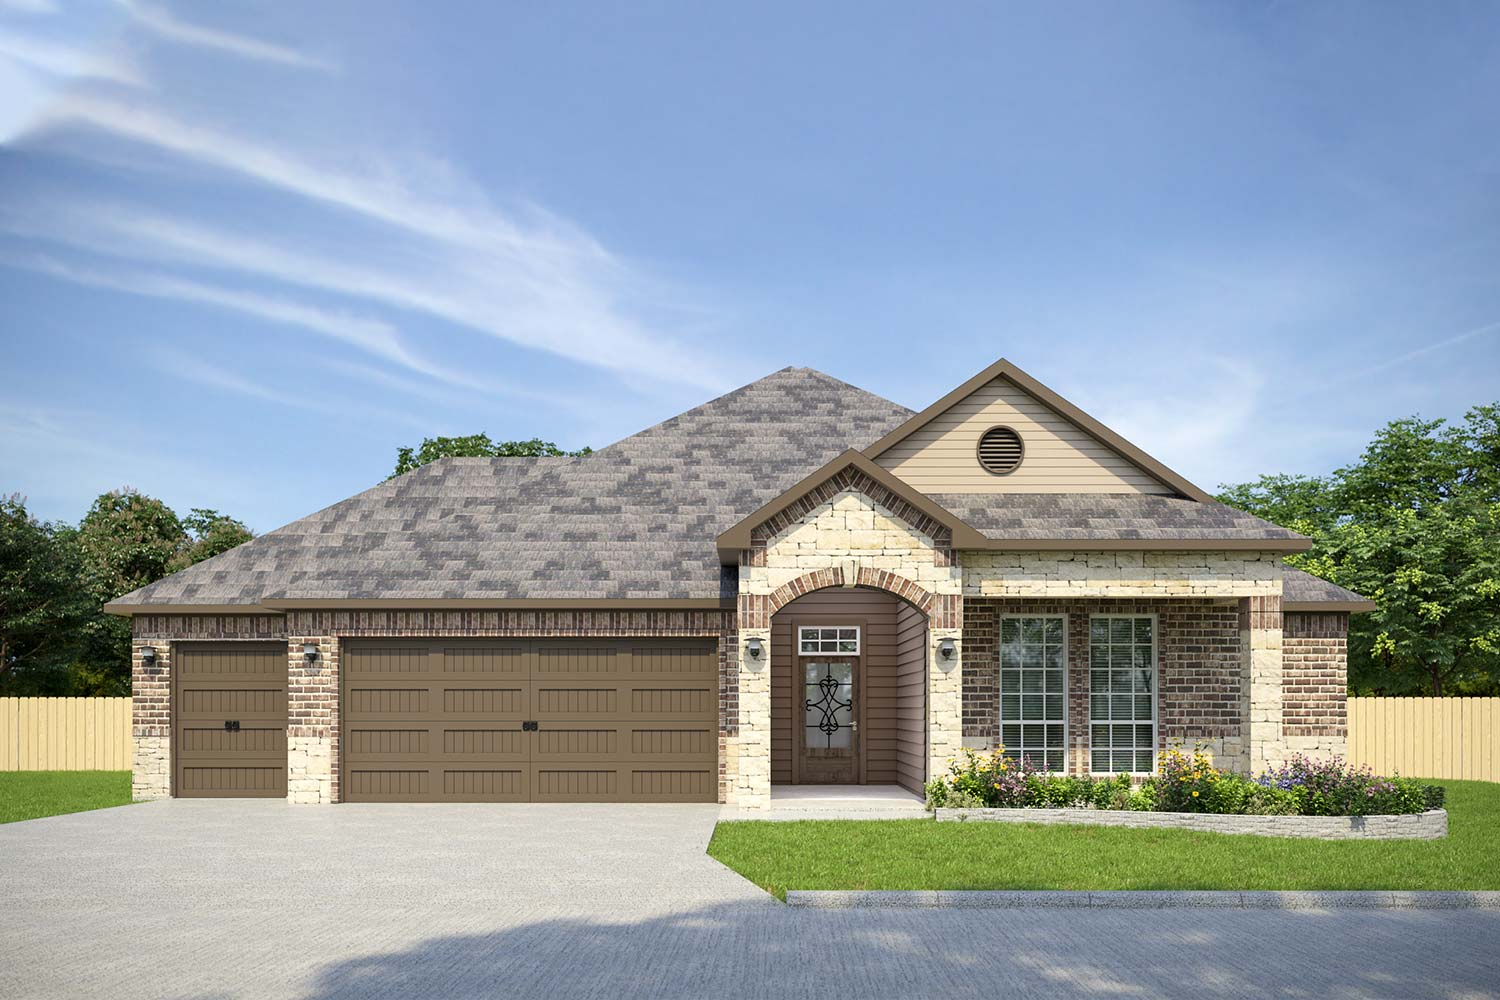 New Homes for Sale in Belton, TX | 3205 Trinity Dr